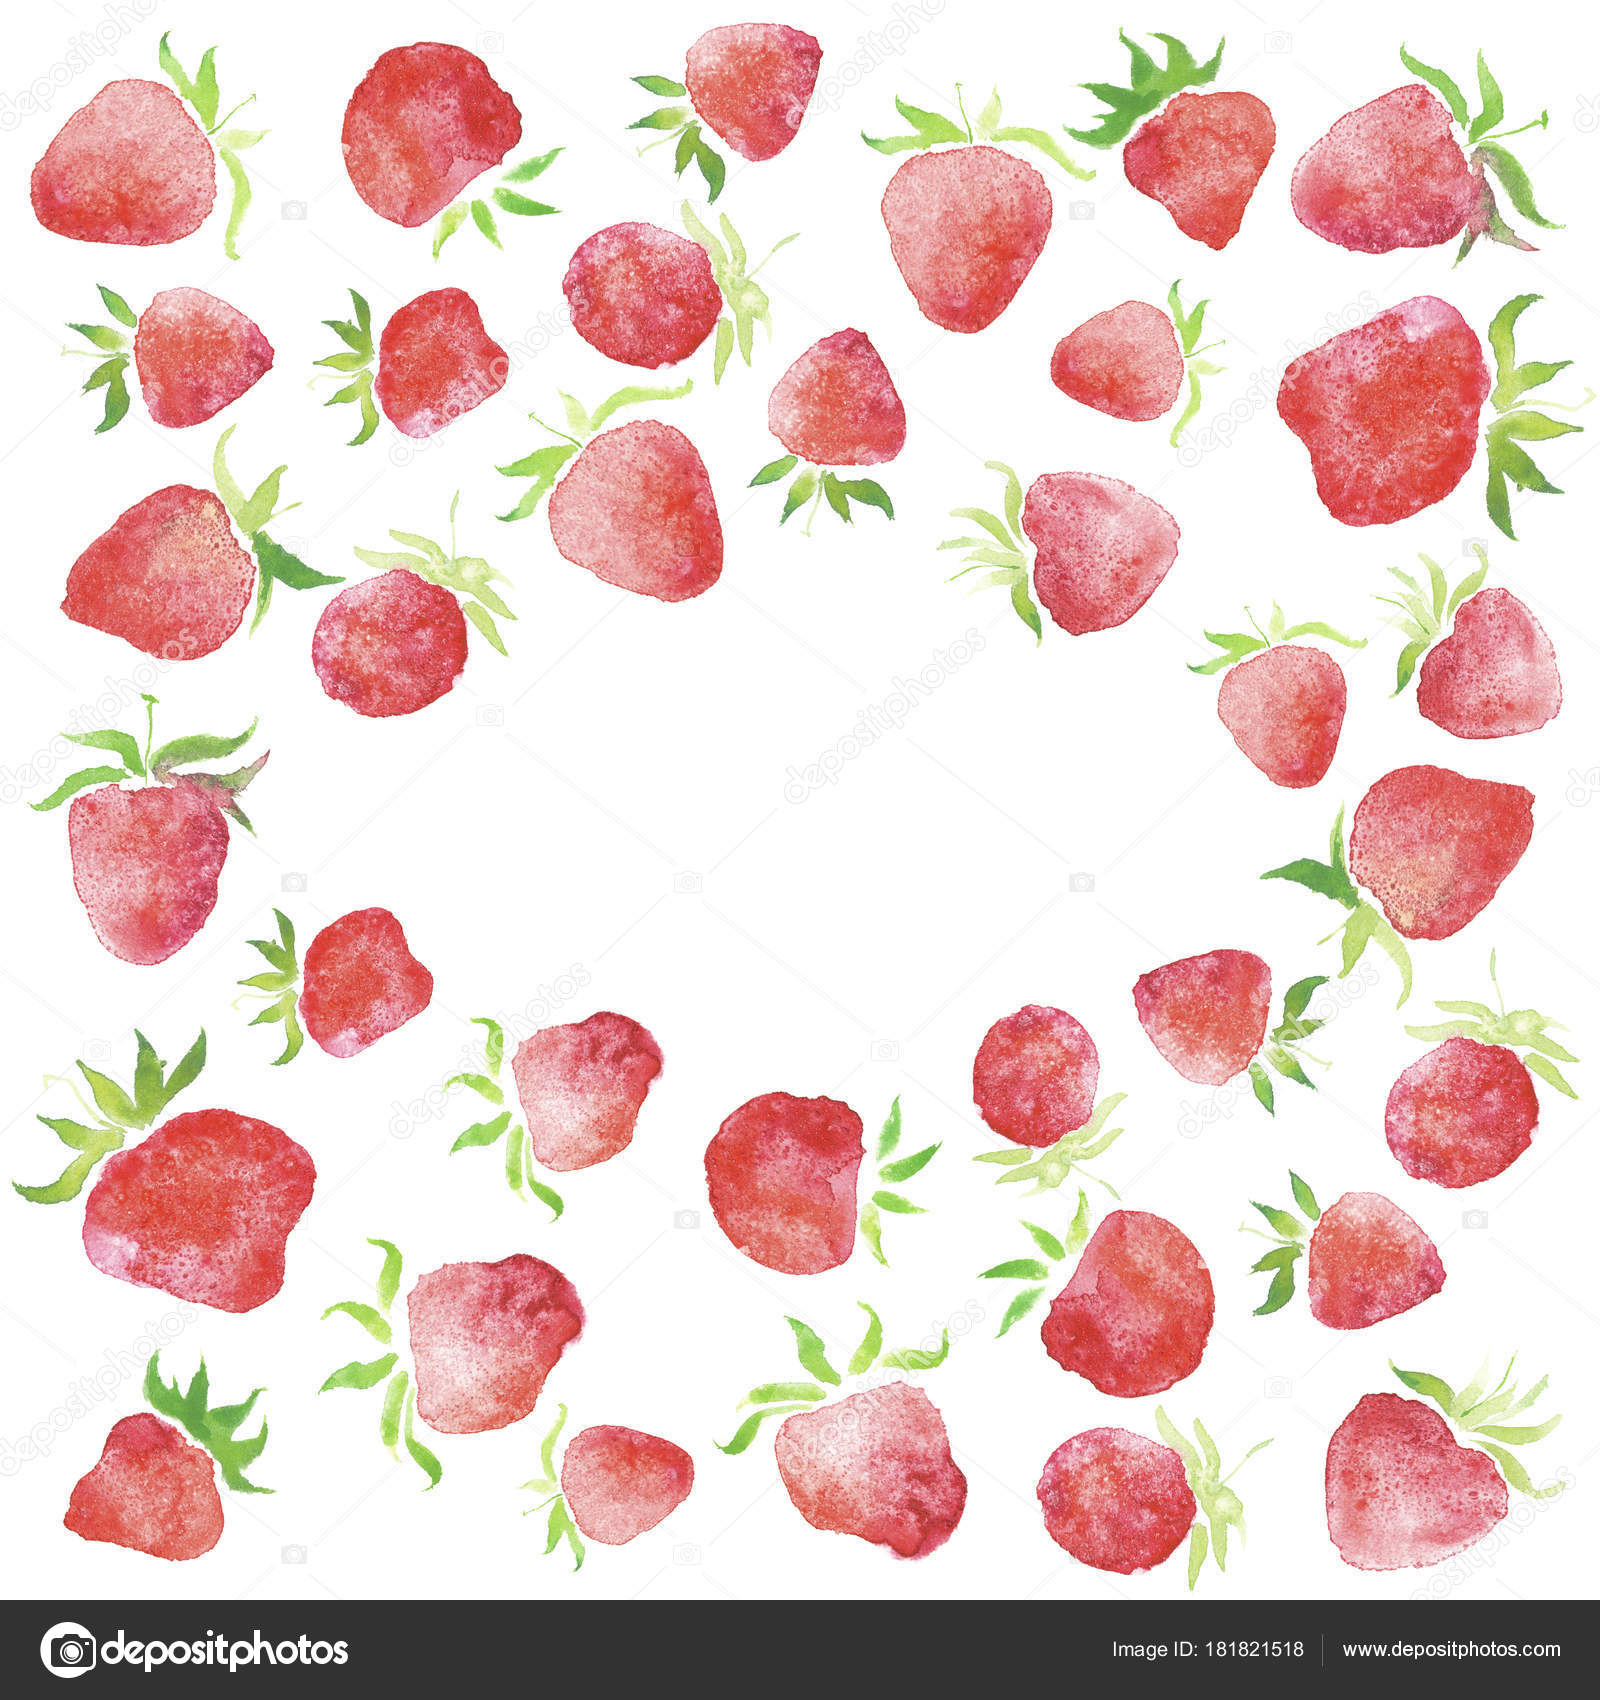 Watercolor Strawberries Wedding Rustic Framed Wreath Rural Restaurant Banner Background Stock Photo